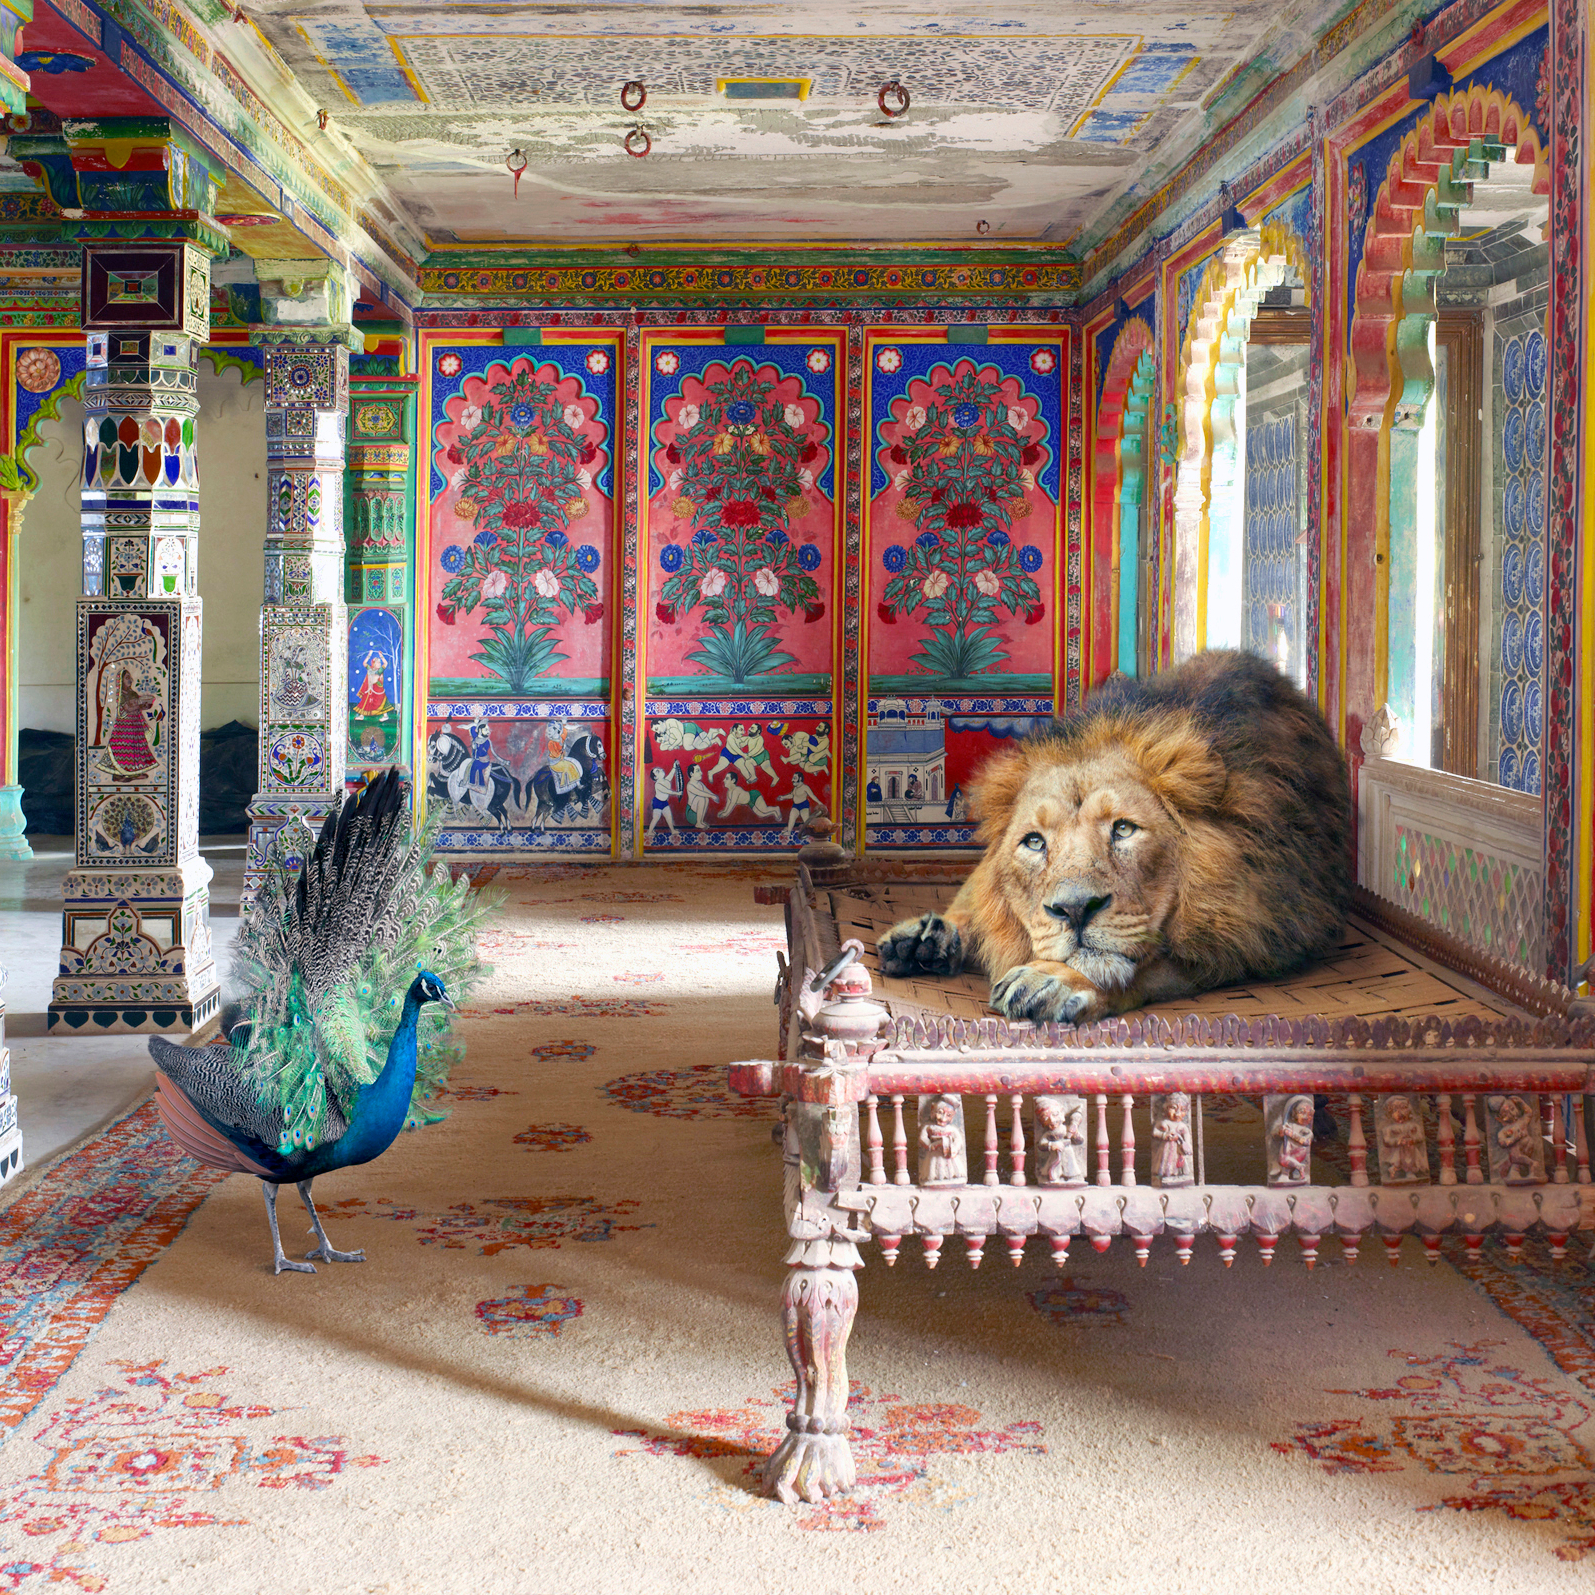 Birds, Beasts and Palaces: Glimpses of Rajasthan by Karen Knorr